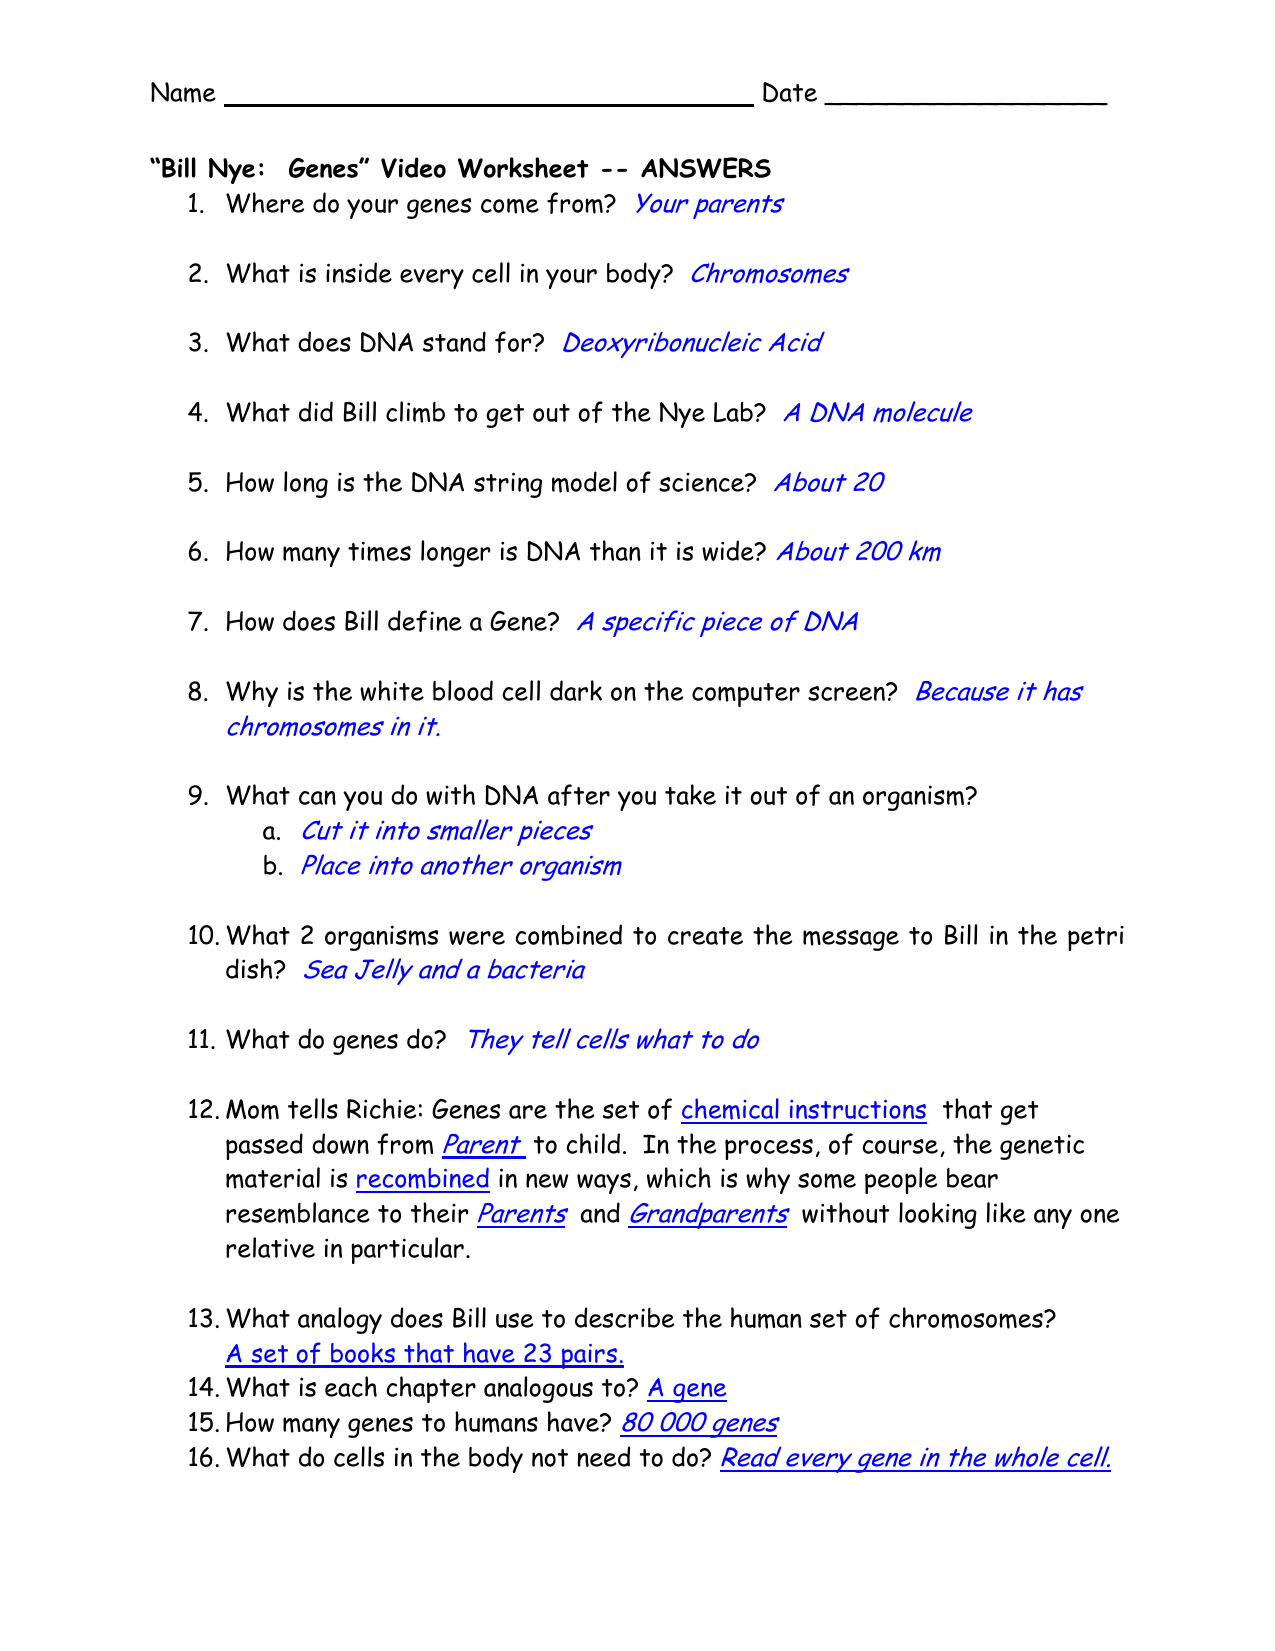 Dna The Genetic Material Worksheet Answers